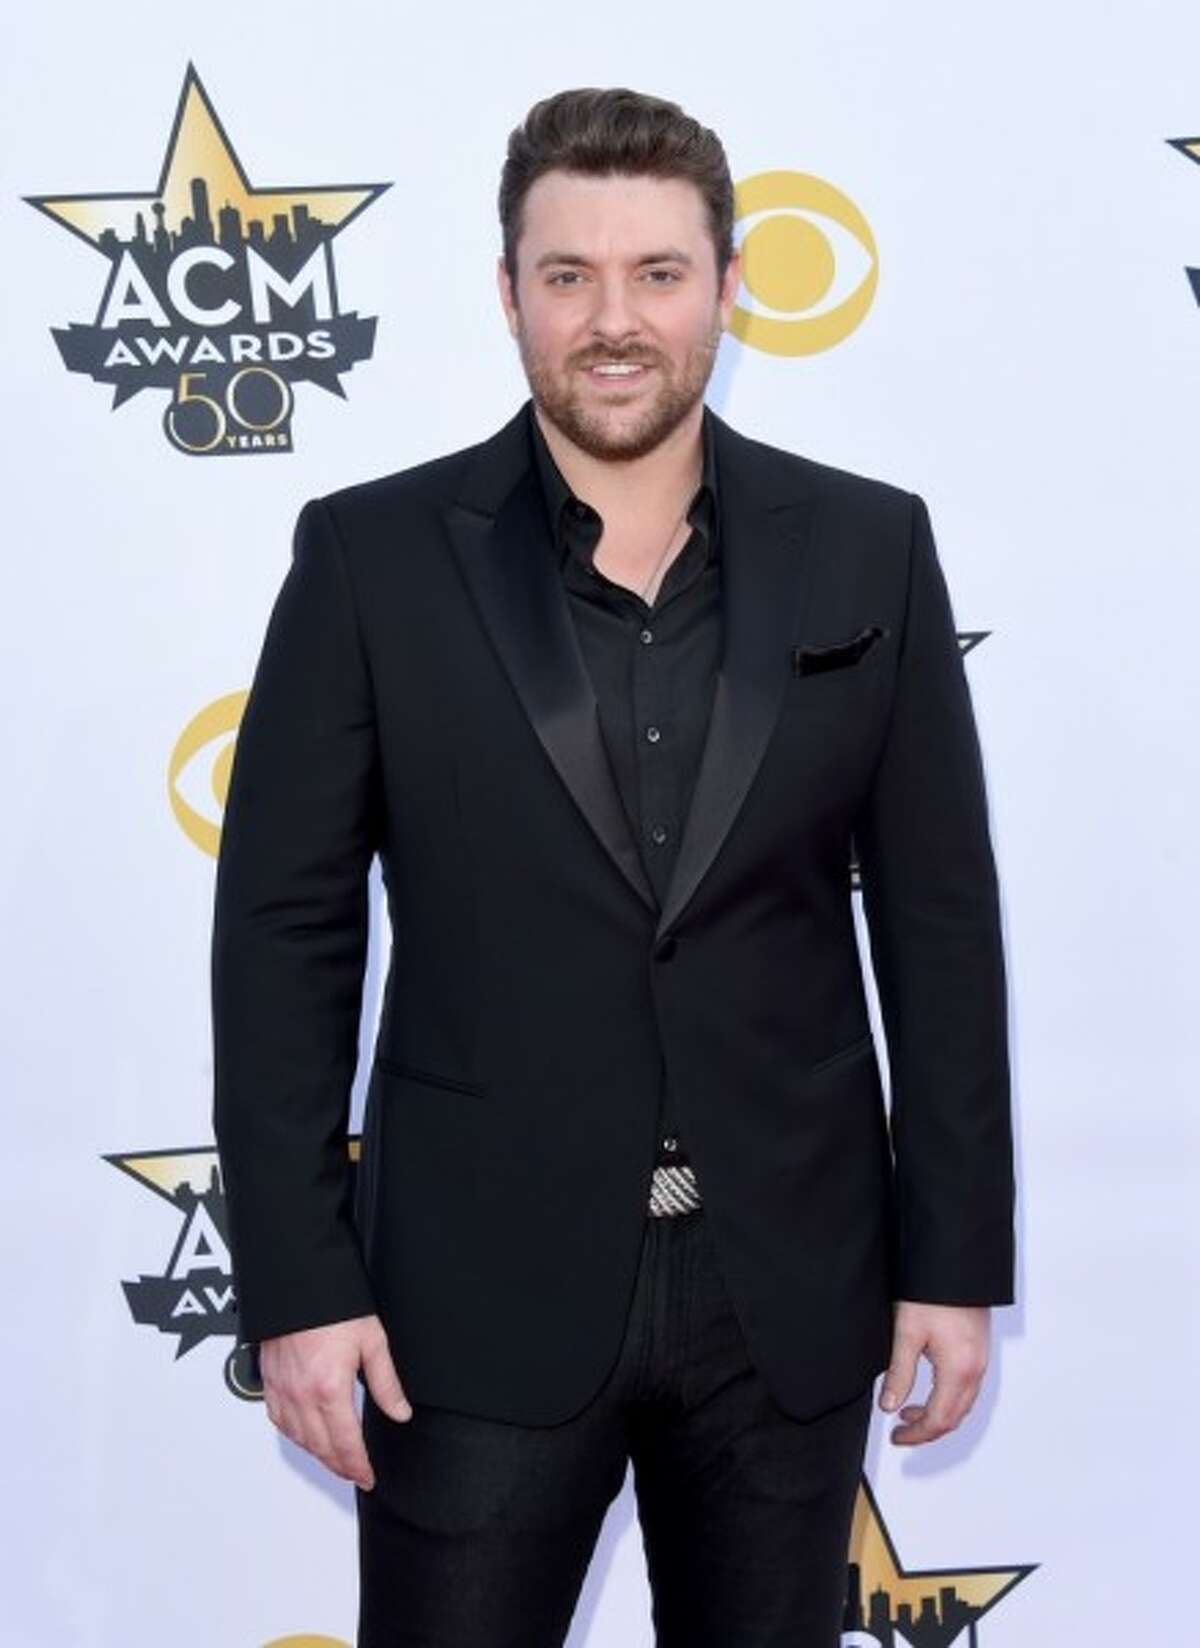 March 2 Chris Young 8,800 remaining tickets (Source: RodeoHouston, as of 2/25/2016)